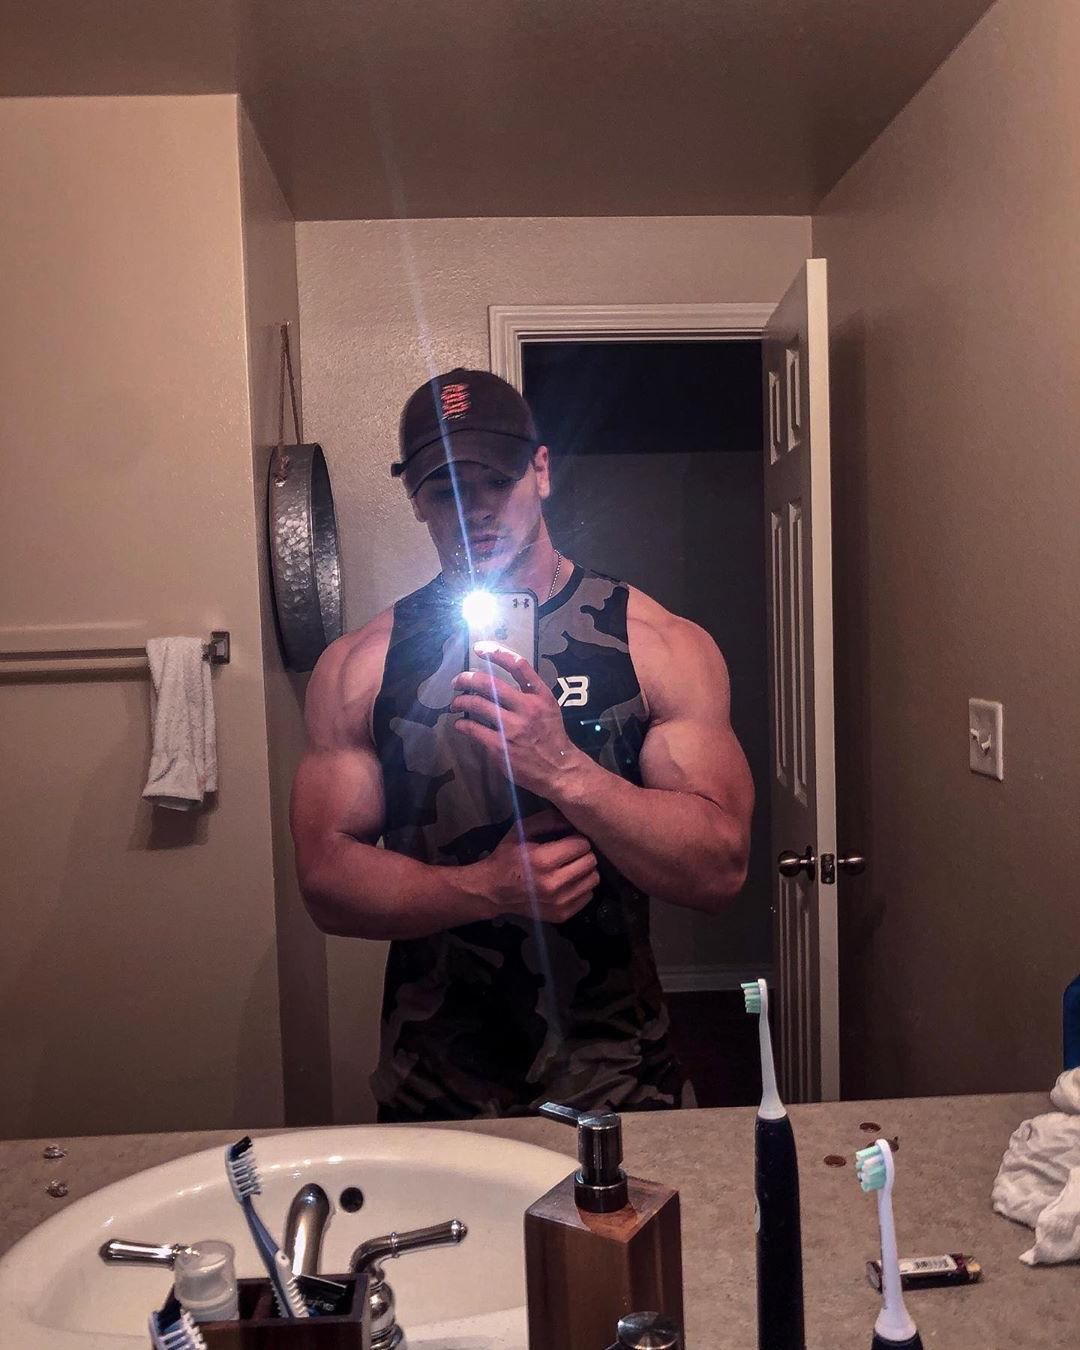 anonymous-young-grindr-gay-muscle-masc-str8-top-bathroom-hooku-sexy-selfie